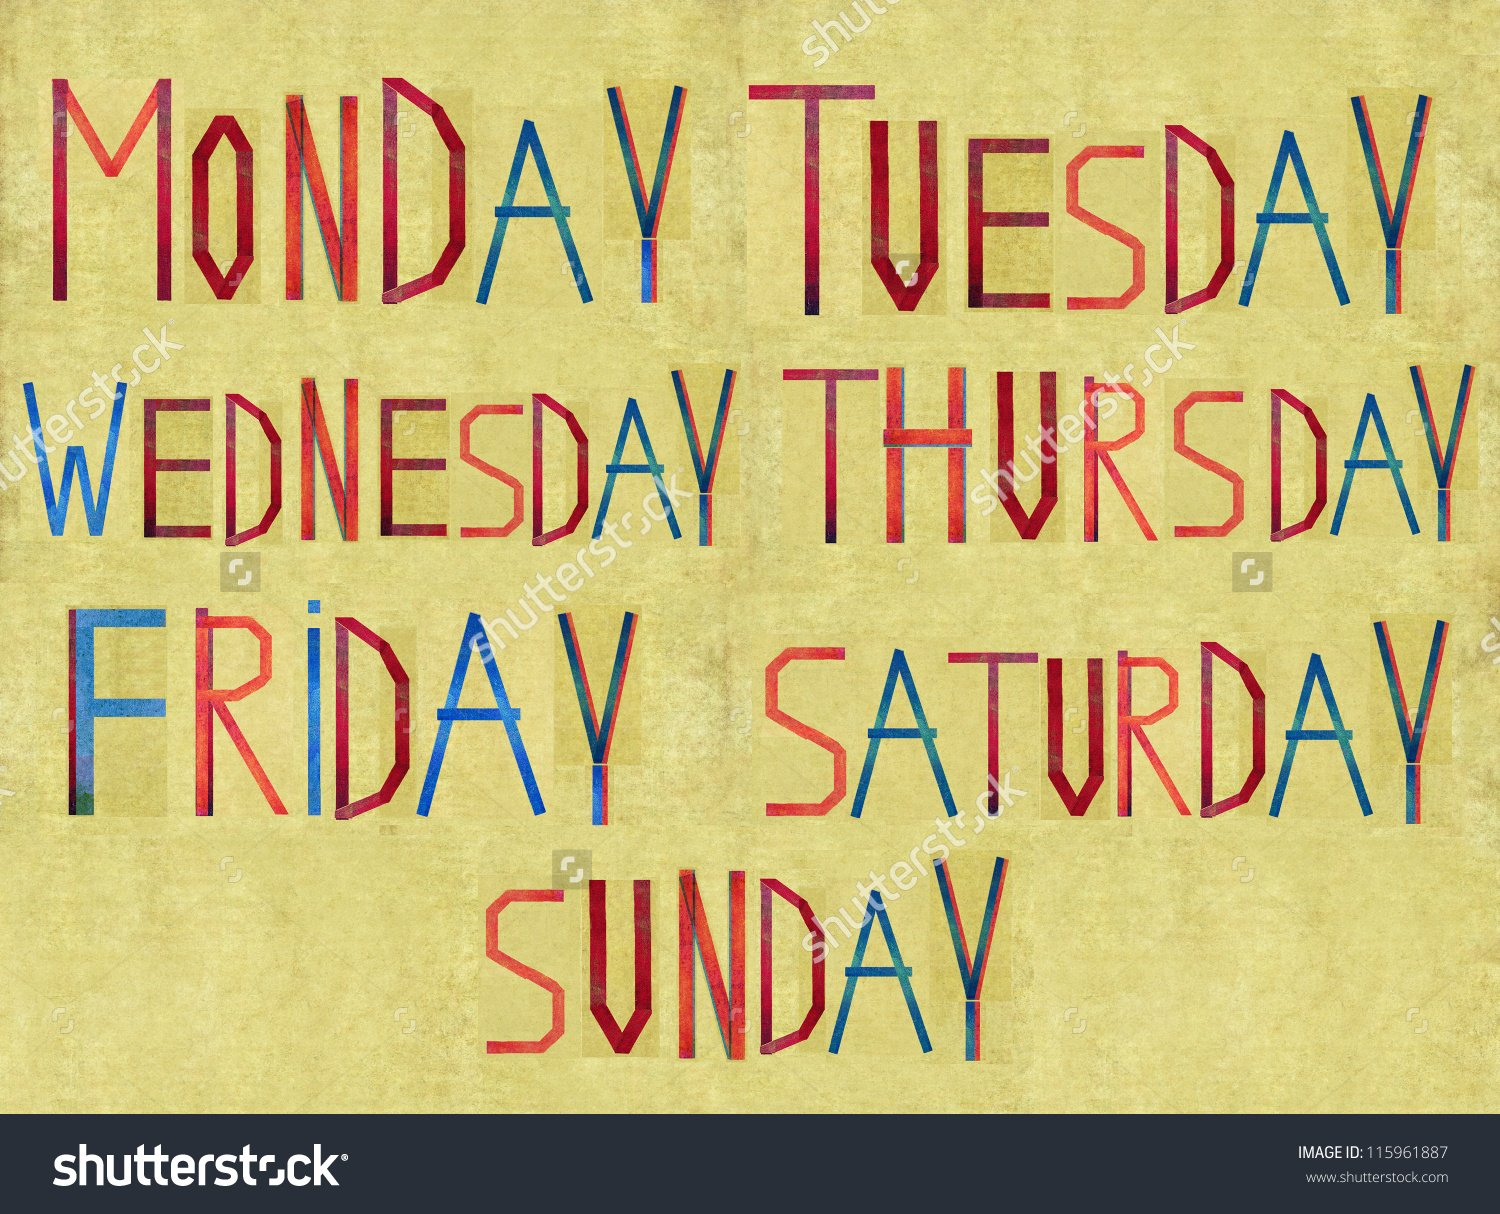 Earthy Background And Design Element Depicting The Days Of The Week 1500x1214